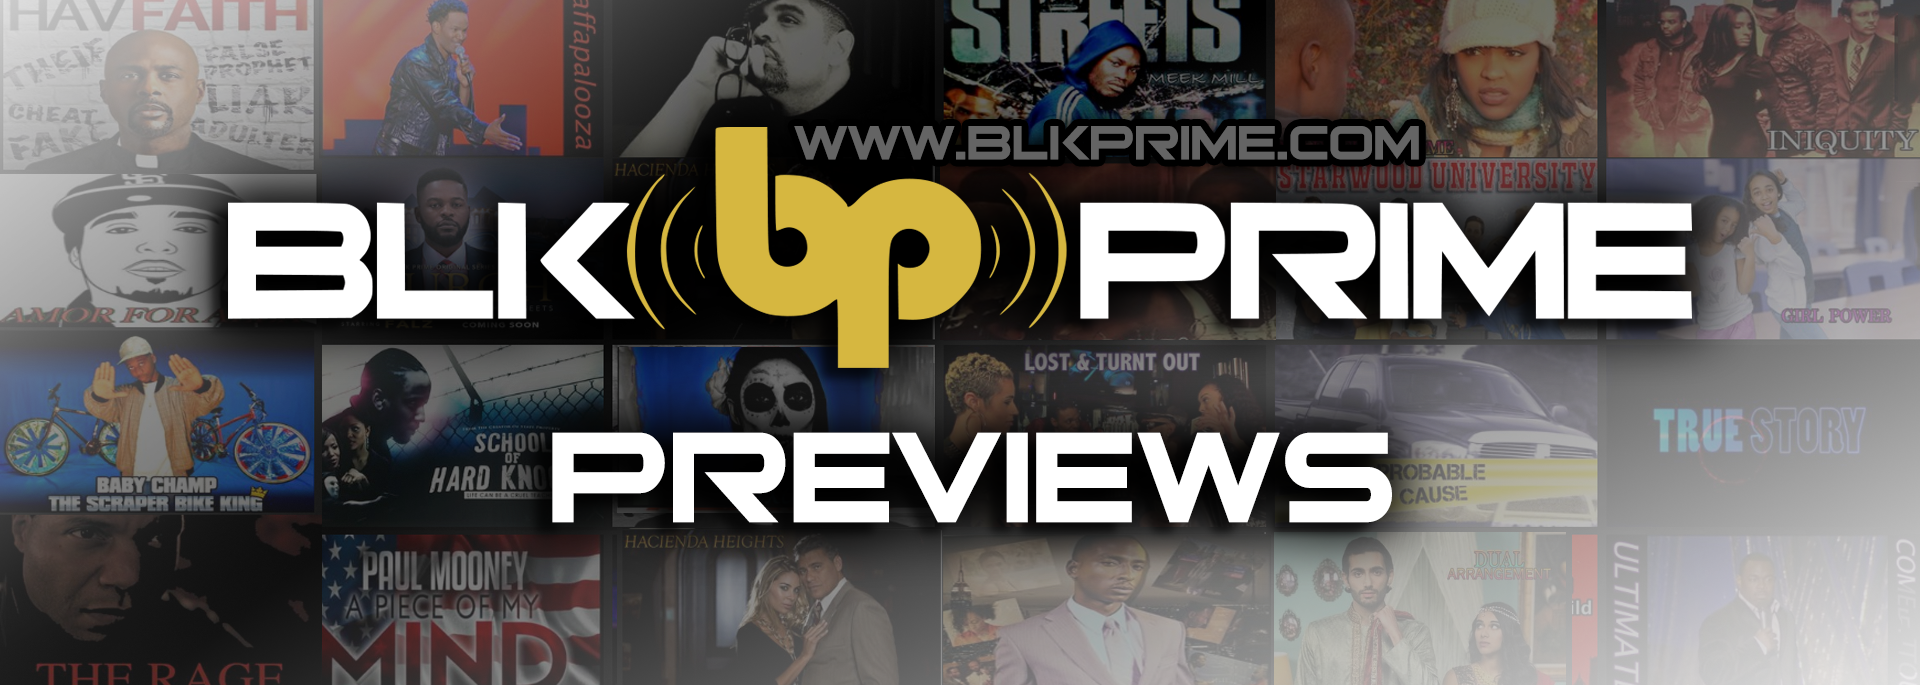 BLK PRIME Previews channel